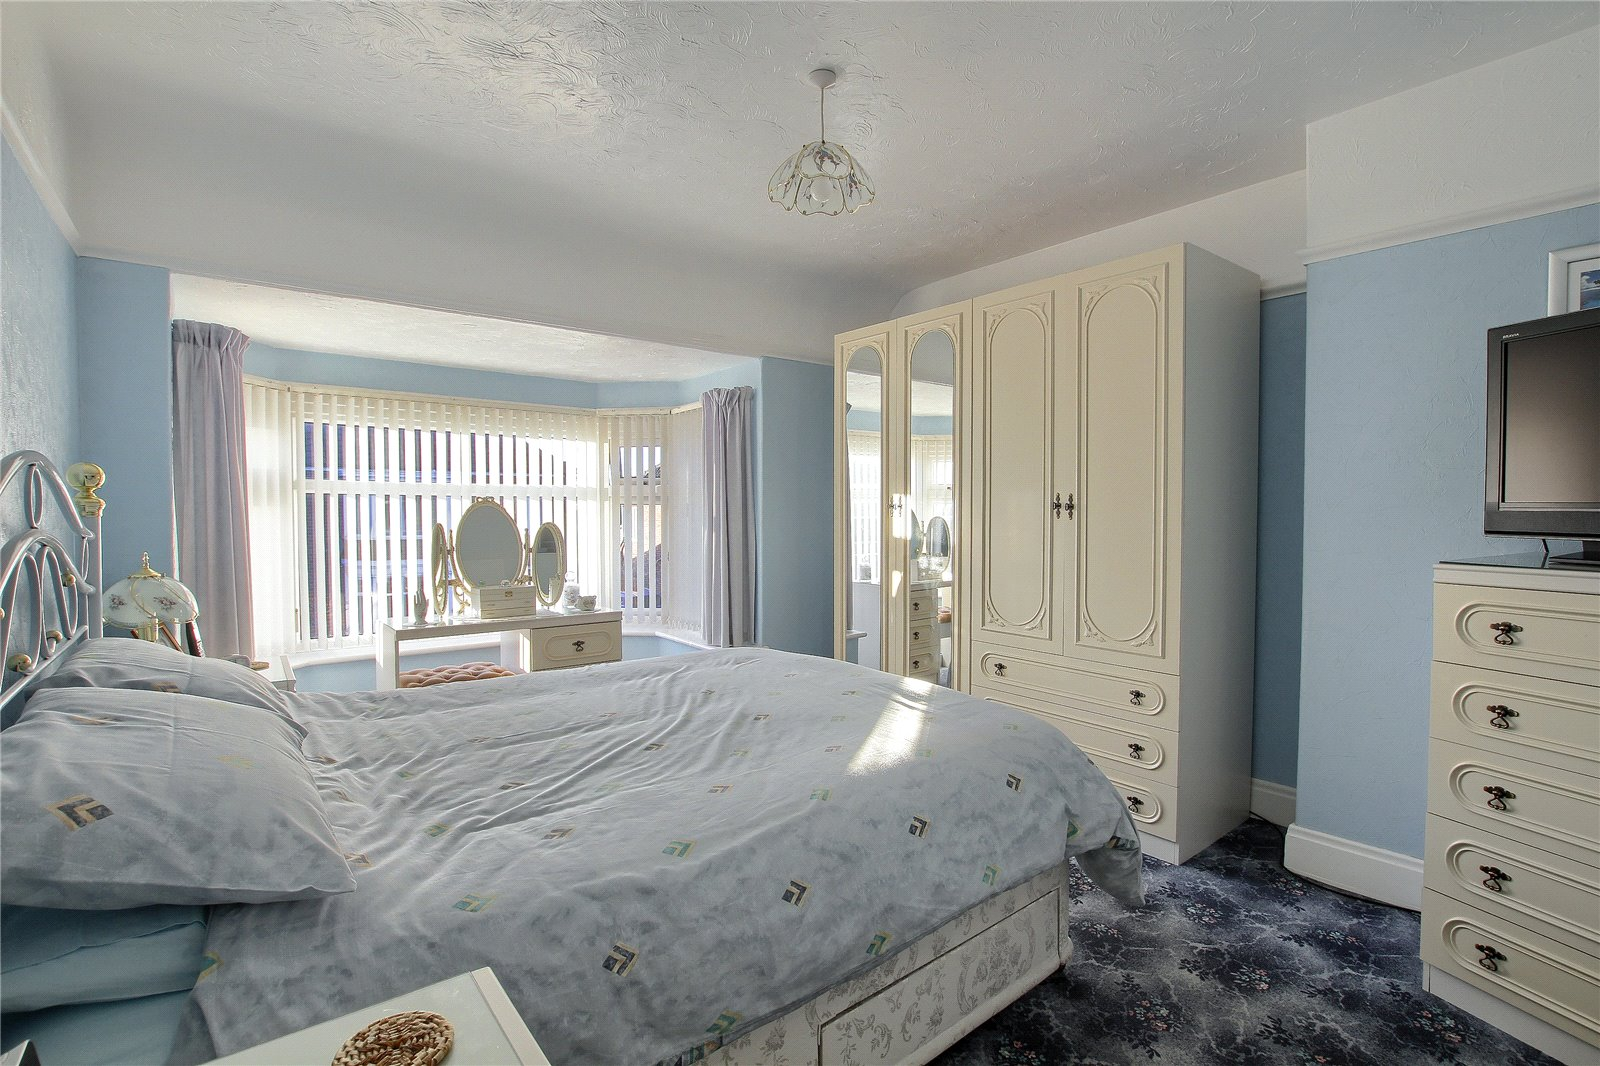 3 bed house for sale in Benton Road, Tollesby  - Property Image 12